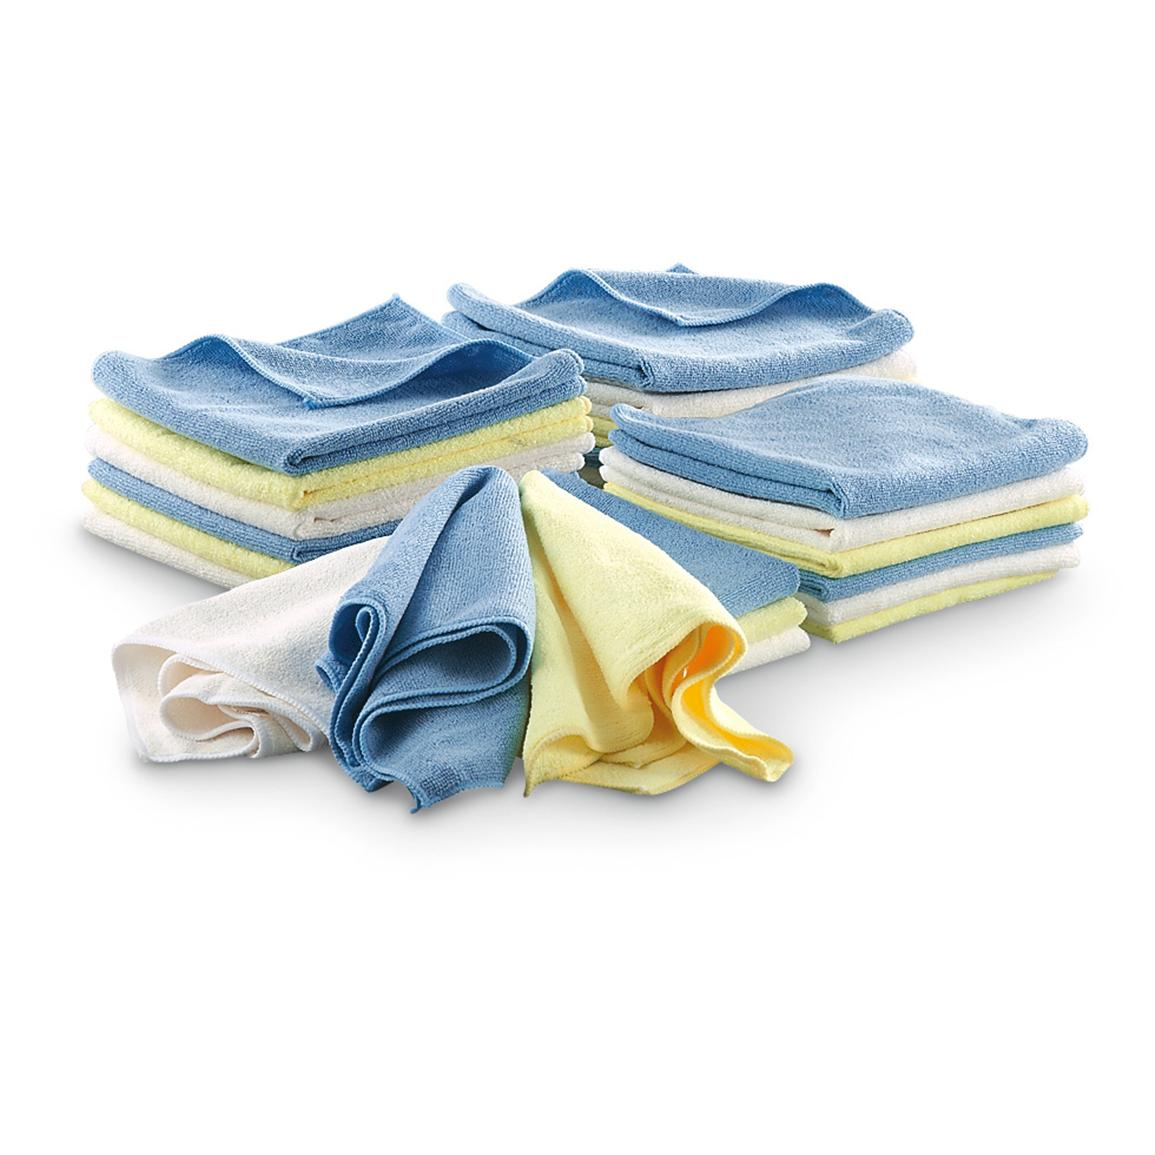 24 Microfiber Cleaning Cloths